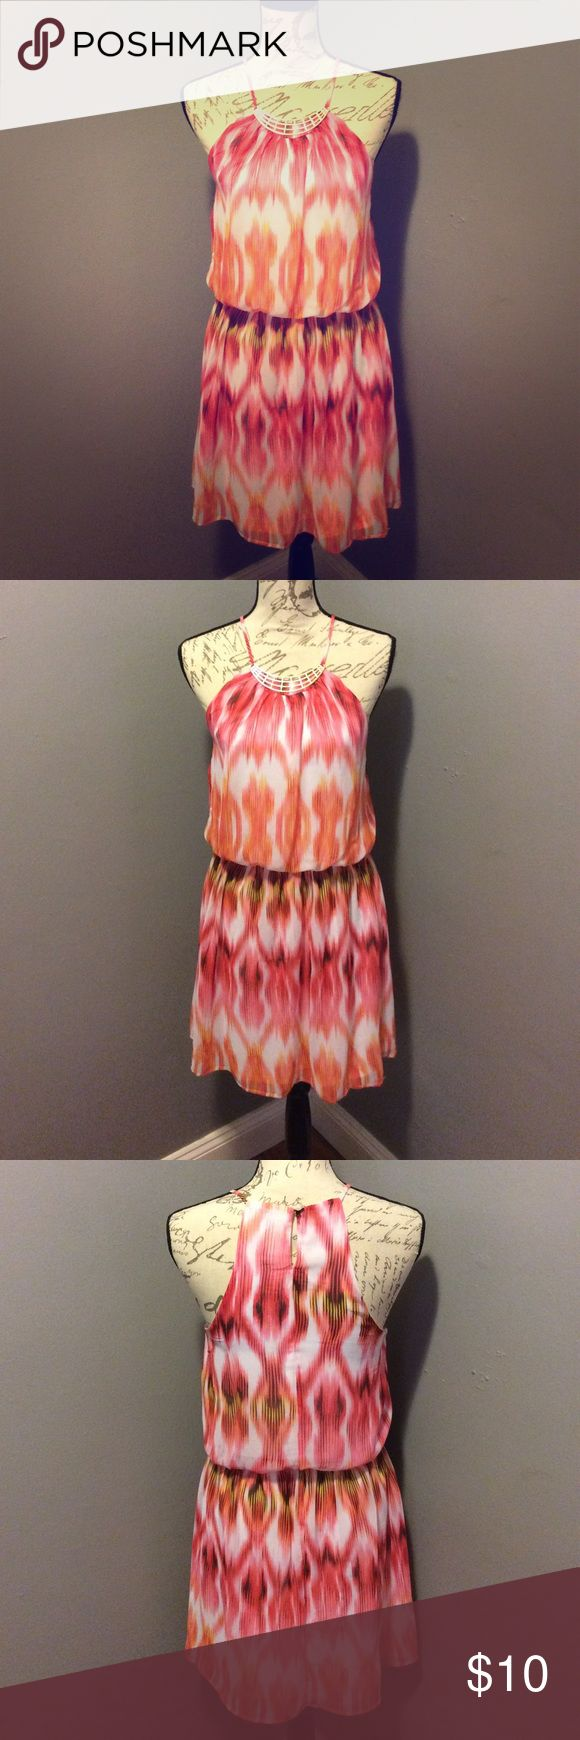 Never worn Beautiful Spring/Summer dress Orange Pink White pull over dress never worn with tags Charlotte Russe Dresses